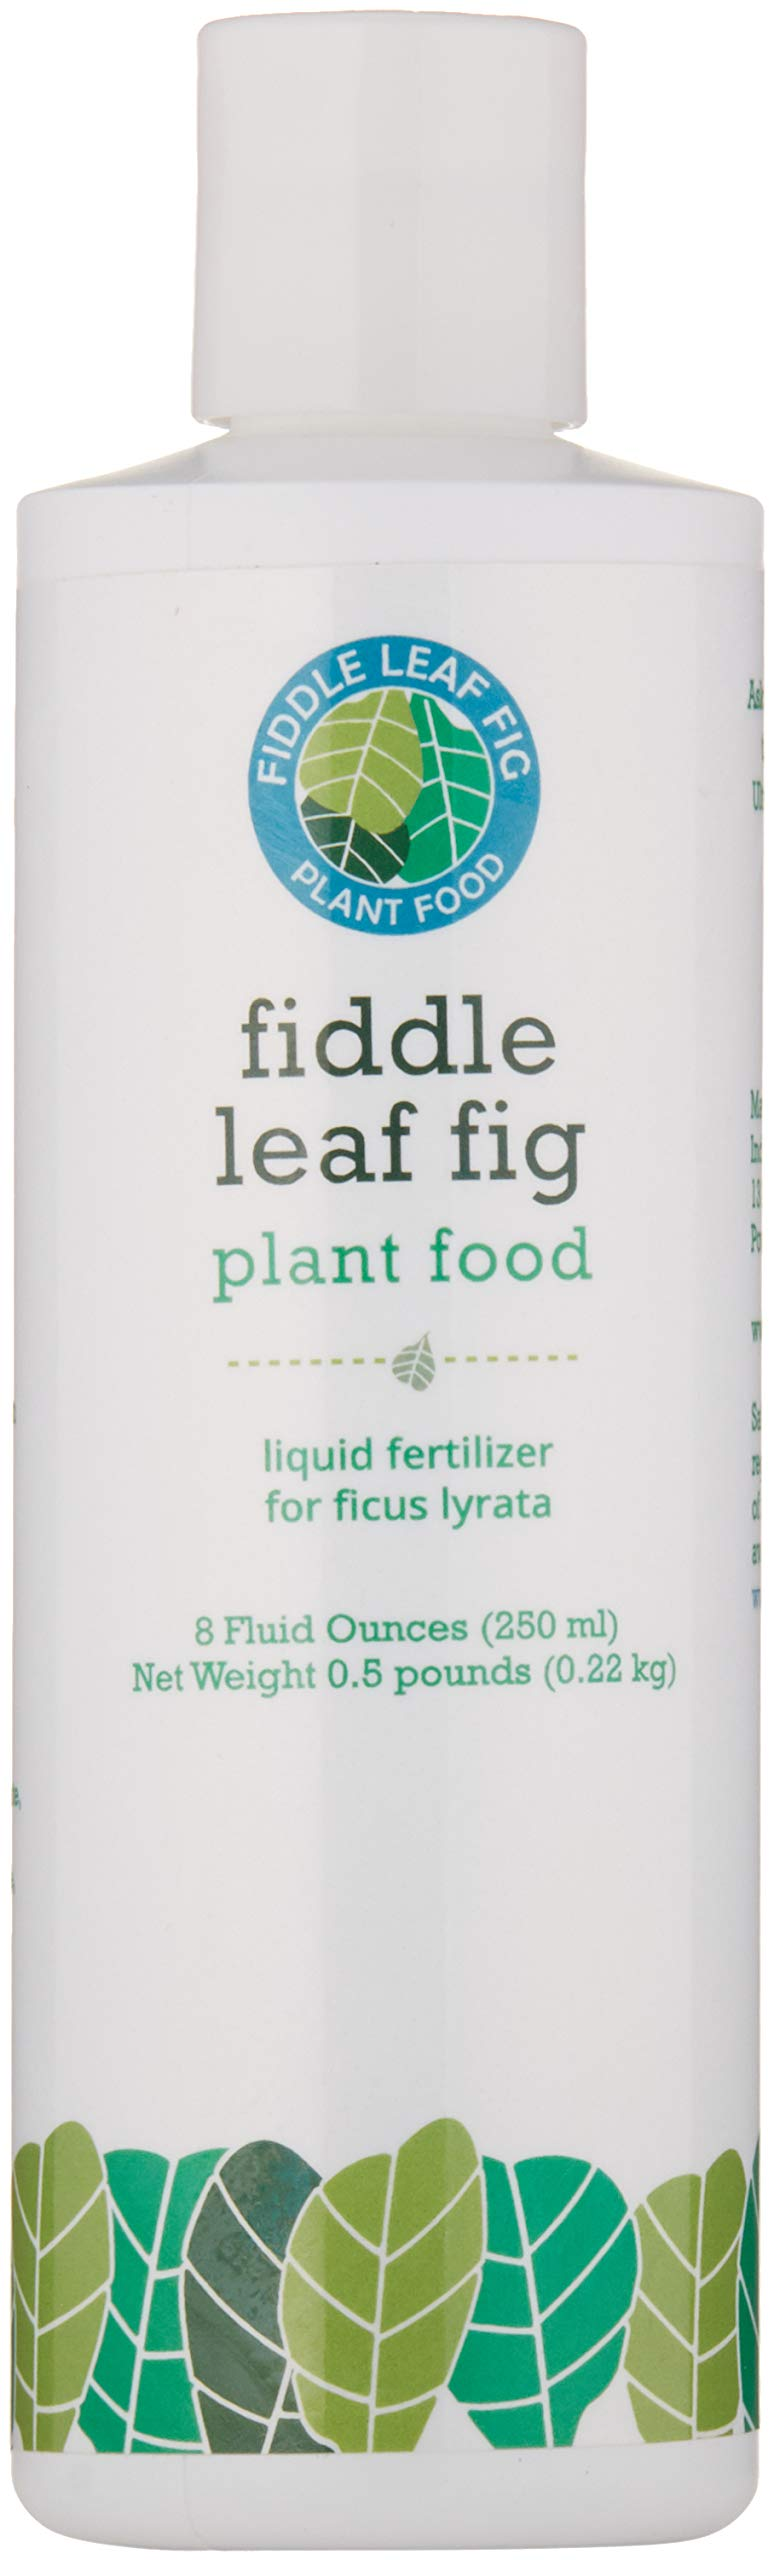 Fiddle Leaf Fig Tree Plant Food for Ficus Lyrata - Calcium Fortified, Urea-Free and with NPK Ratio of 3-1-2 for Healthy Roots, Stems and Leaves (8 Ounces)) by Fiddle Leaf Fig Plant Food